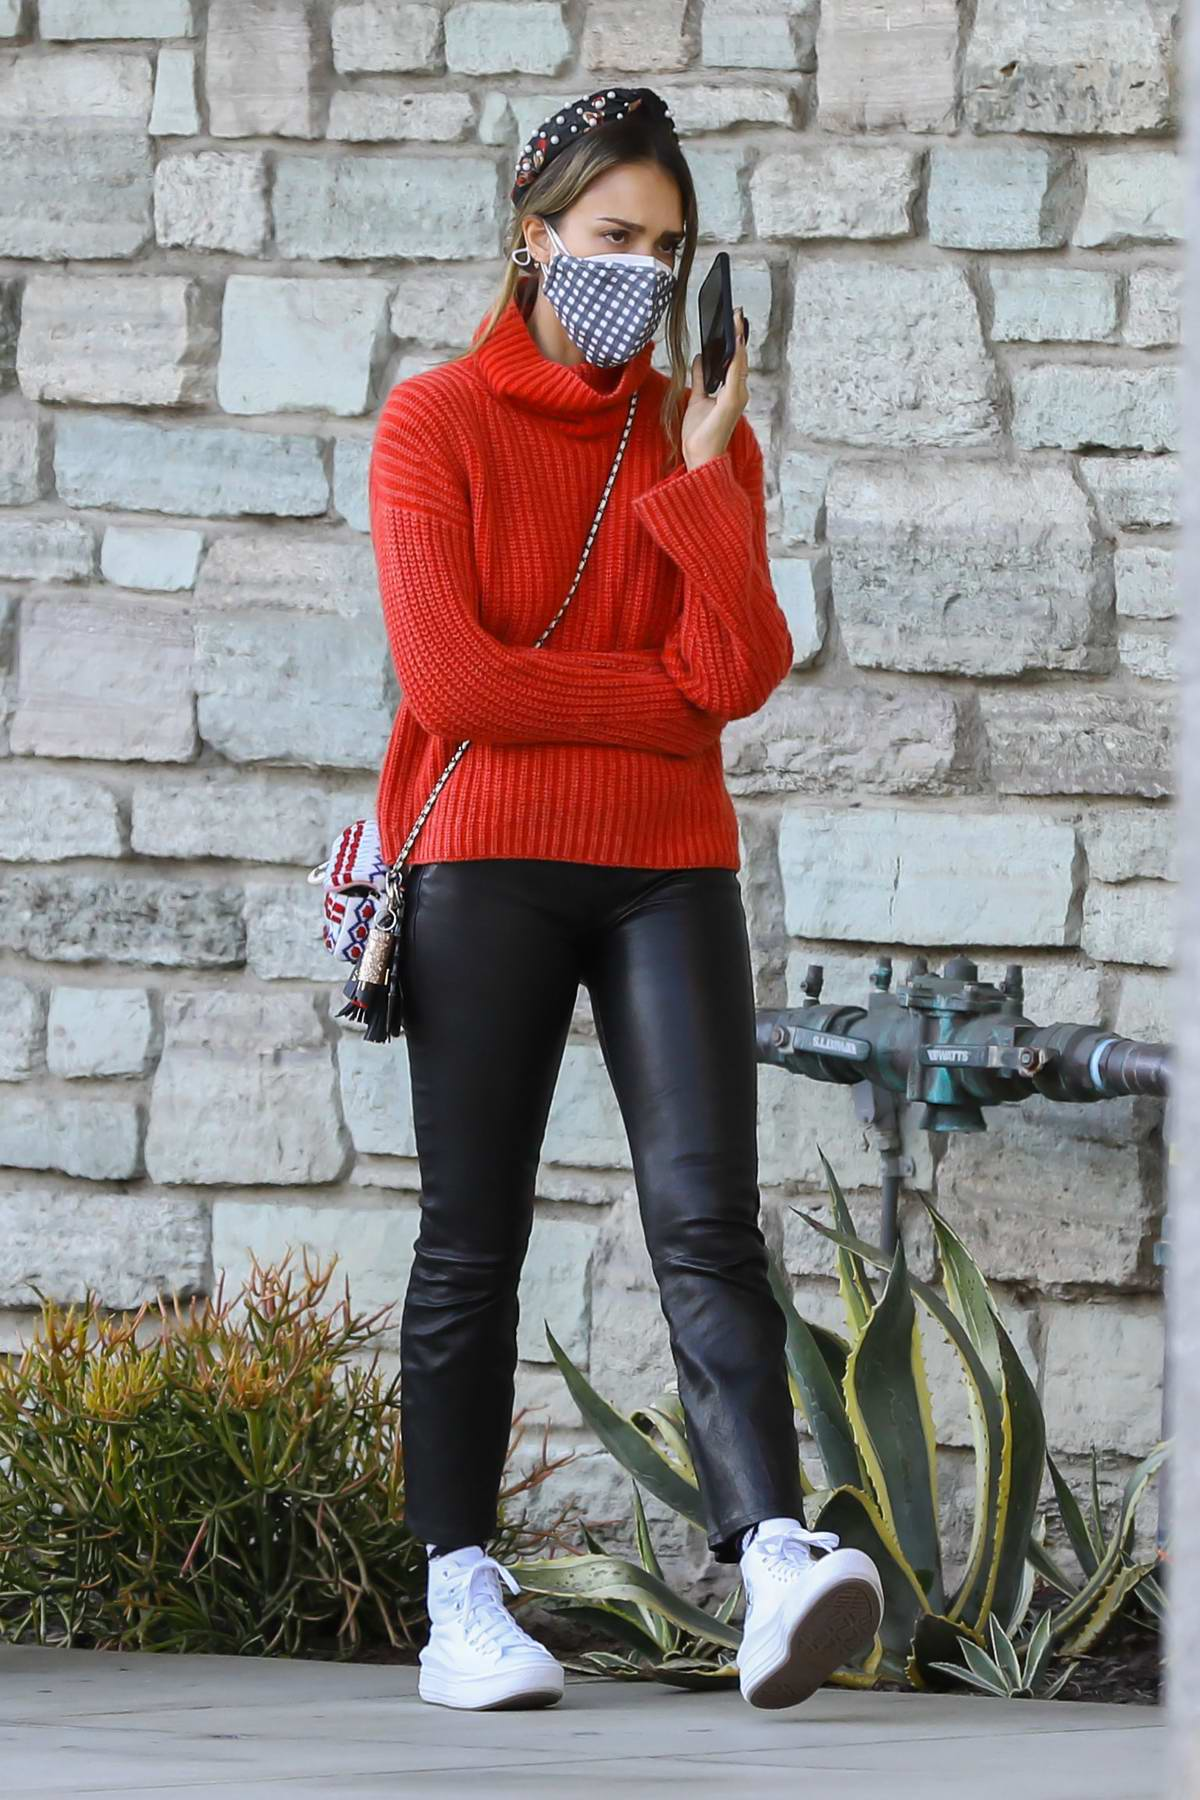 Jessica Alba looks great in a red turtleneck sweater and black leather pants while shopping at Target in Hollywood, California